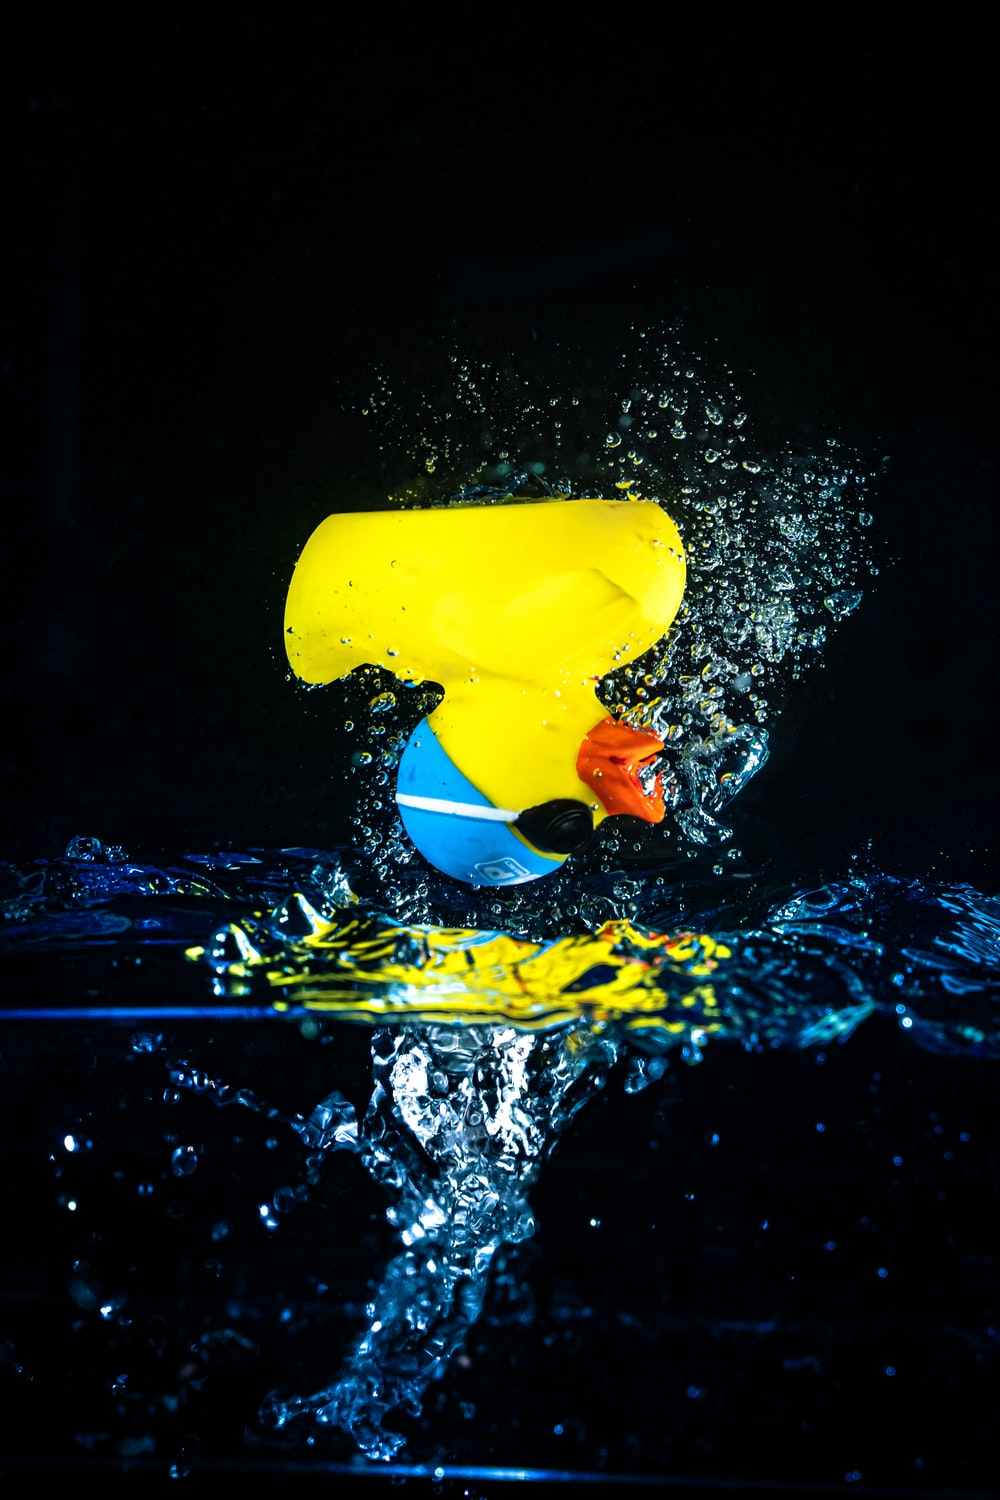 yellow plastic cup on water